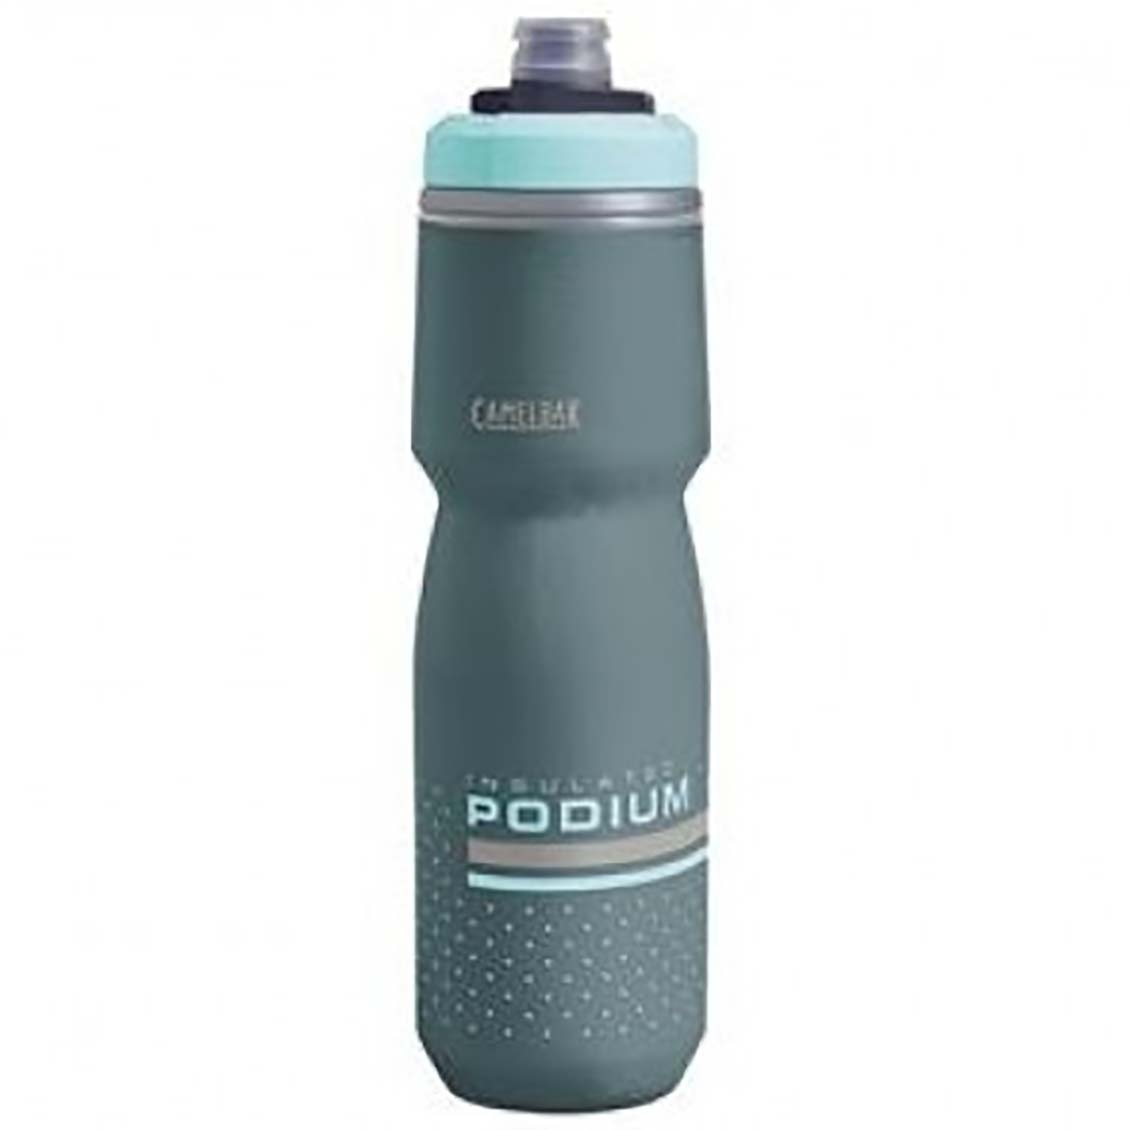 CamelBak Podium Chill 2.0 drikkedunk - Turkis 620 ml